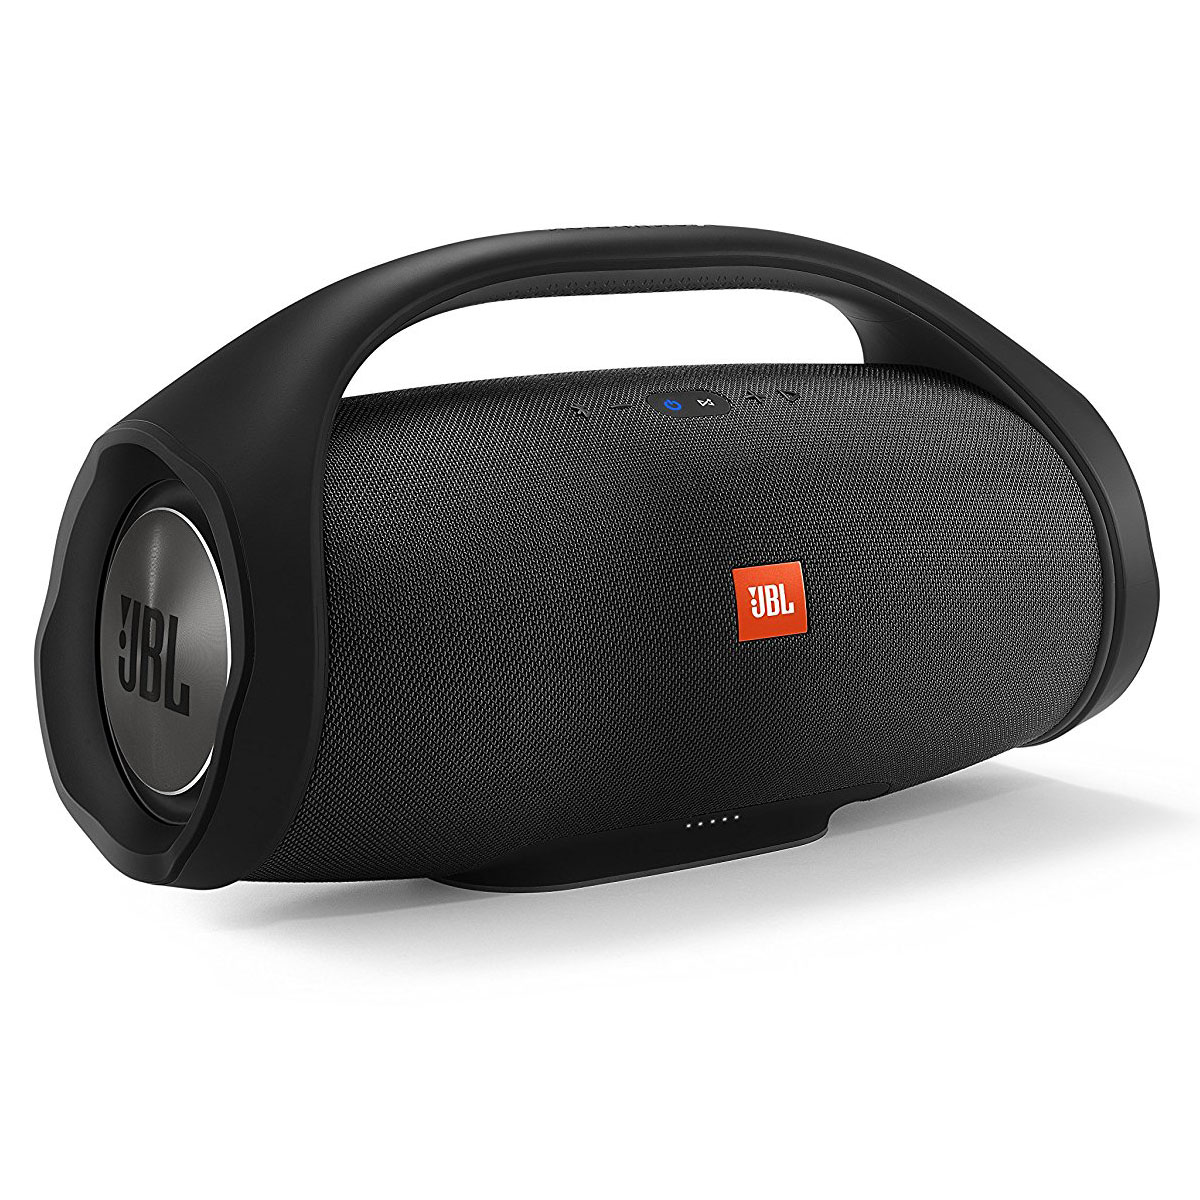 jbl boombox dock enceinte bluetooth jbl sur. Black Bedroom Furniture Sets. Home Design Ideas